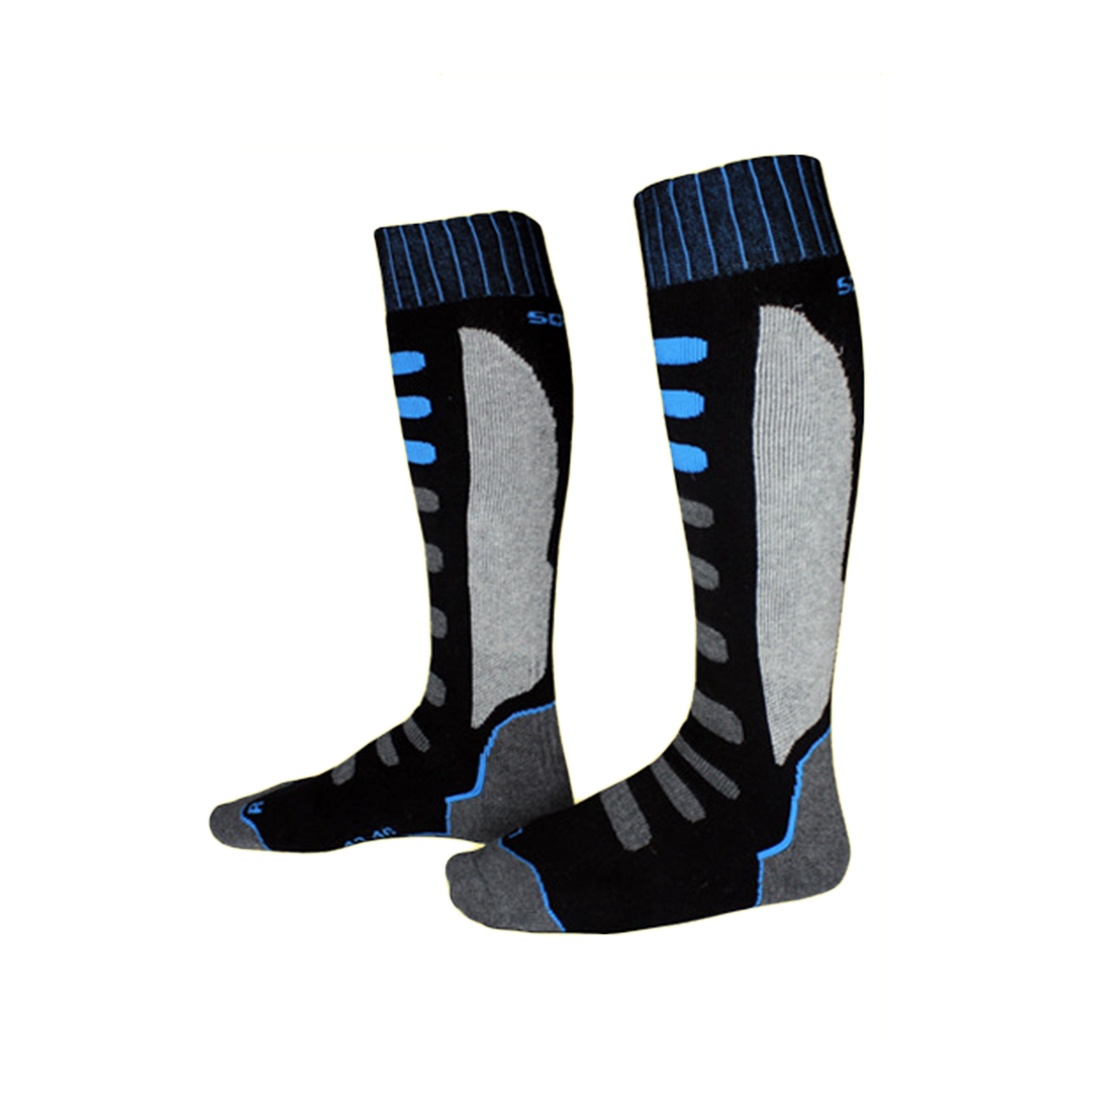 New Winter Warm Men Thermal Ski Socks Thick Cotton Sports Snowboard Cycling Skiing Soccer Socks calzini ciclismo bici